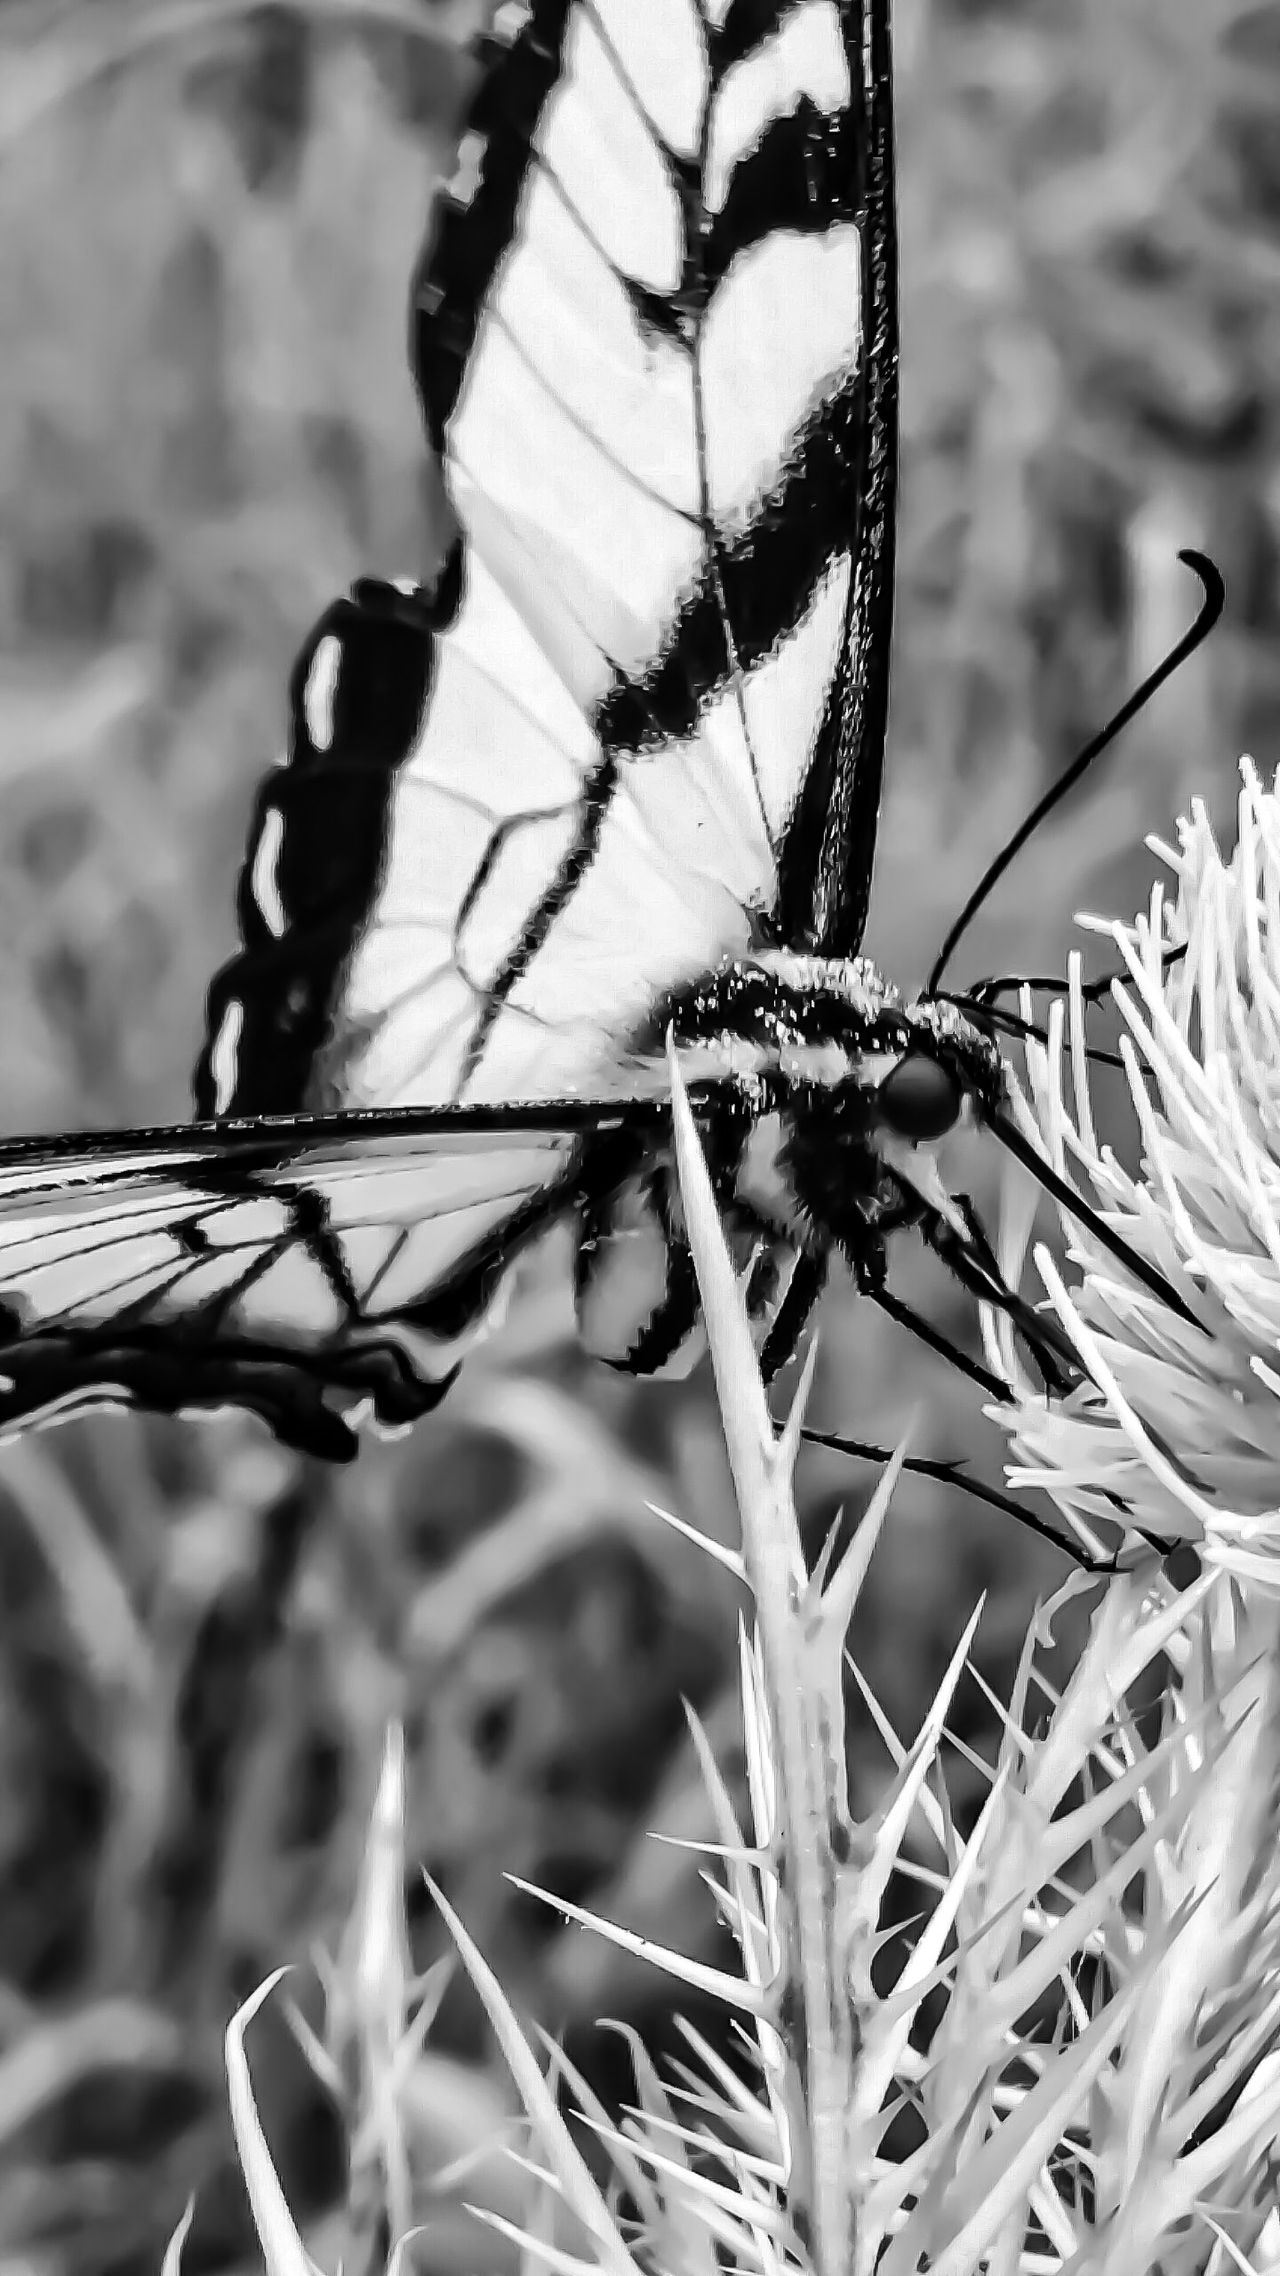 Animal Themes Close-up Animals In The Wild One Animal Focus On Foreground Insect Animal Wildlife Nature Outdoors No People Day Plant Beauty In Nature Perching Pollination Nectar Macro Still Life Tounge Out  Animals In Action Macro Photography Butterfly Butterfly - Insect Action Motion